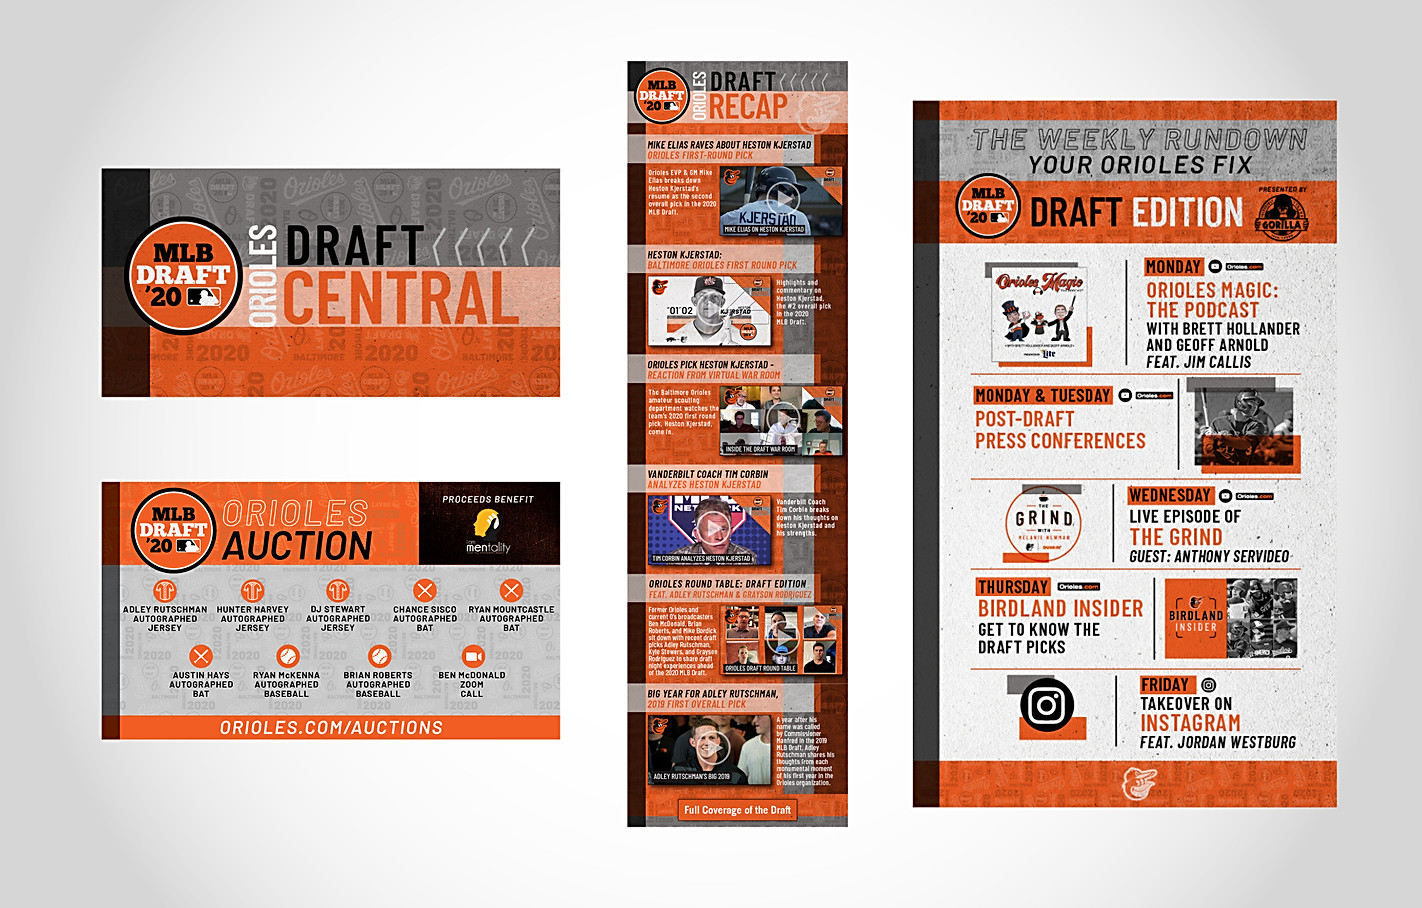 Orioles Draft Central Web Campaign